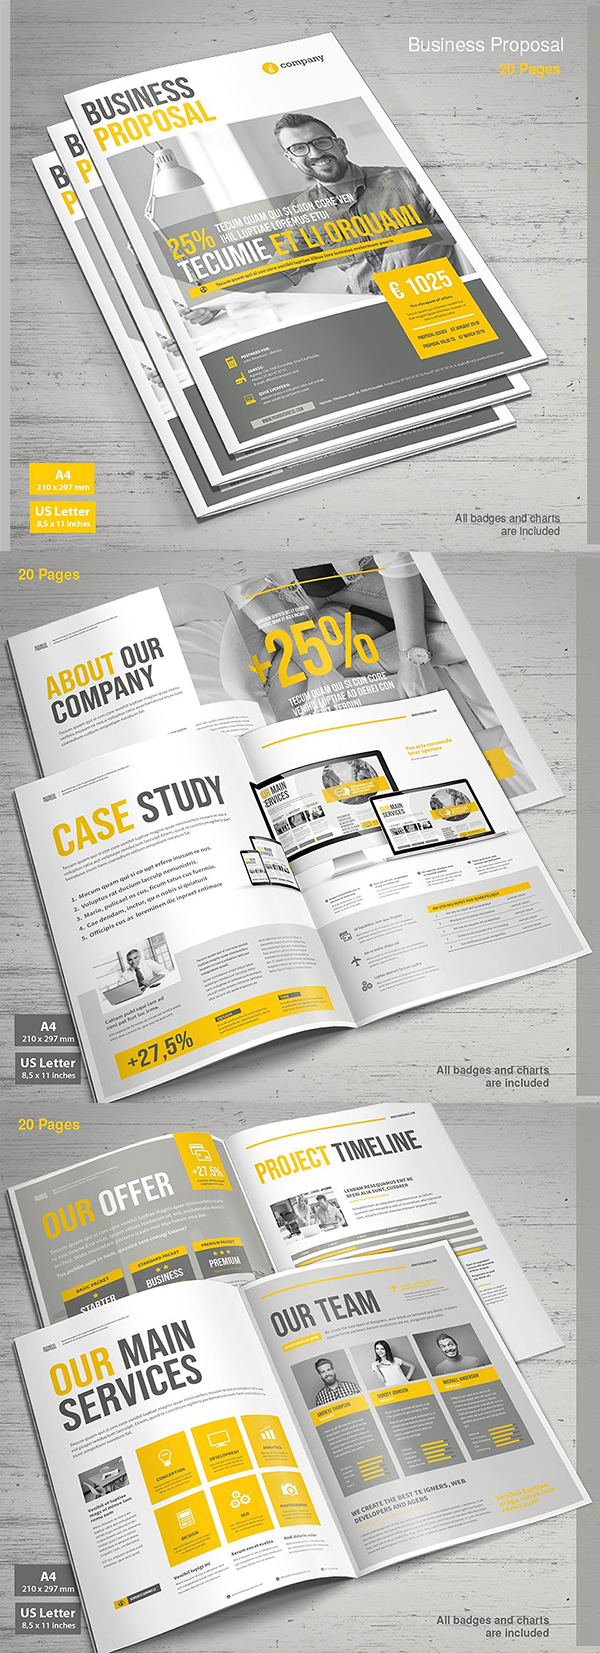 Business proposal templates design graphic design junction professional business proposal templates design 15 accmission Choice Image